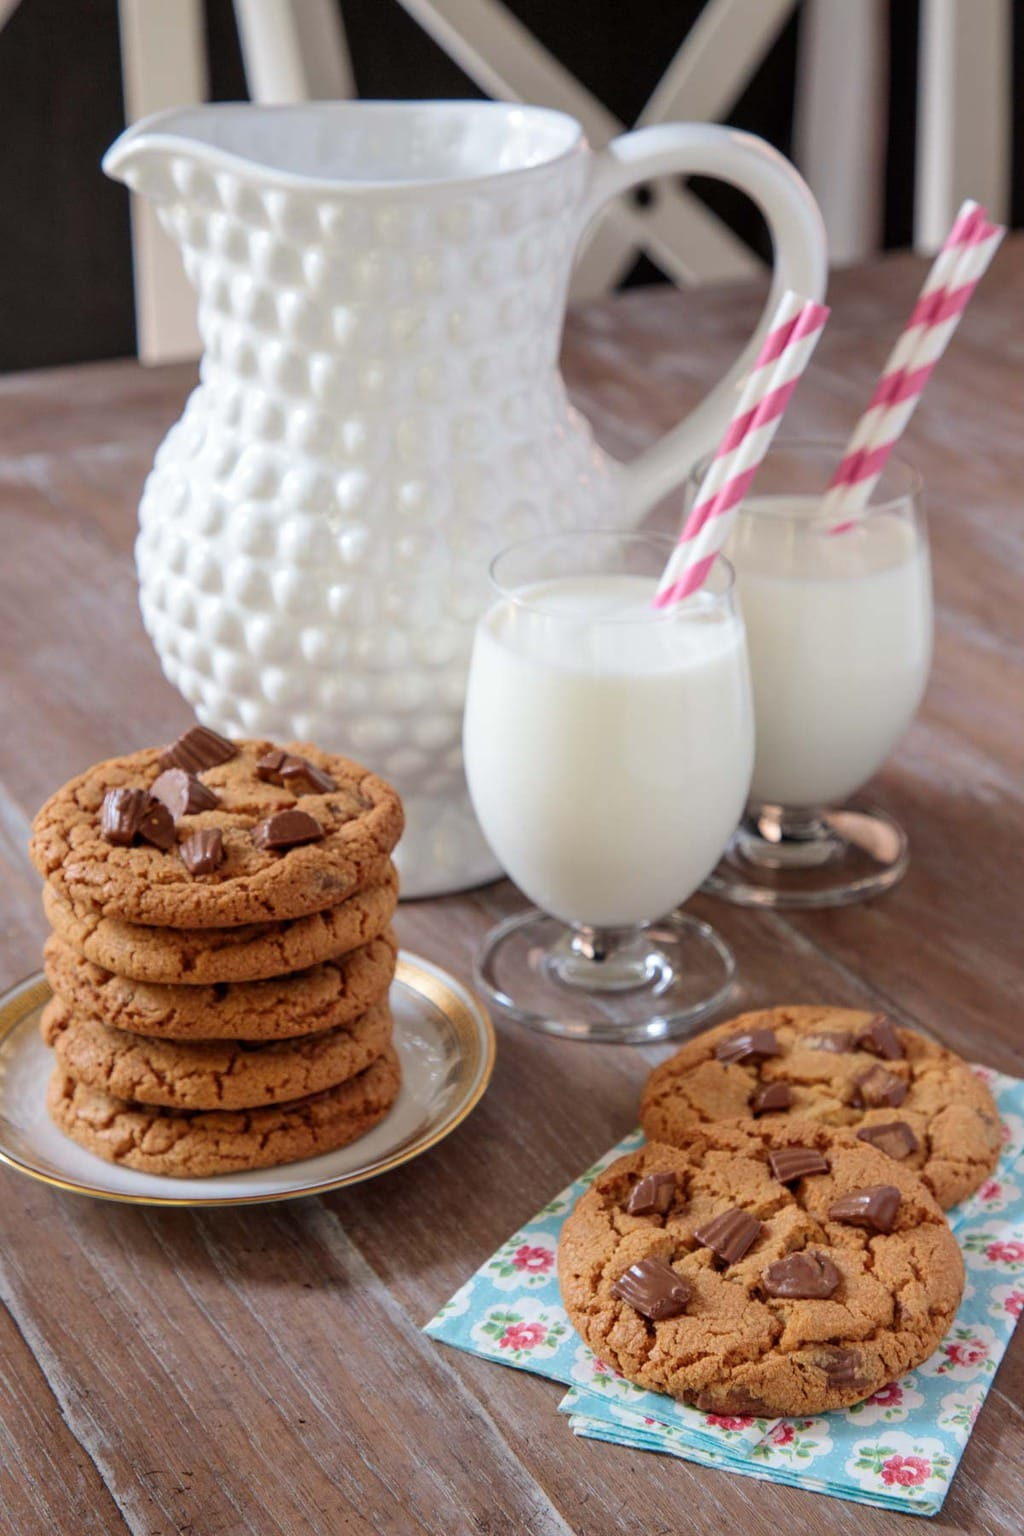 Vertical photo of One-Bowl Reese's Peanut Butter Cookies on a plate with glasses of milk and a pitcher in the background.